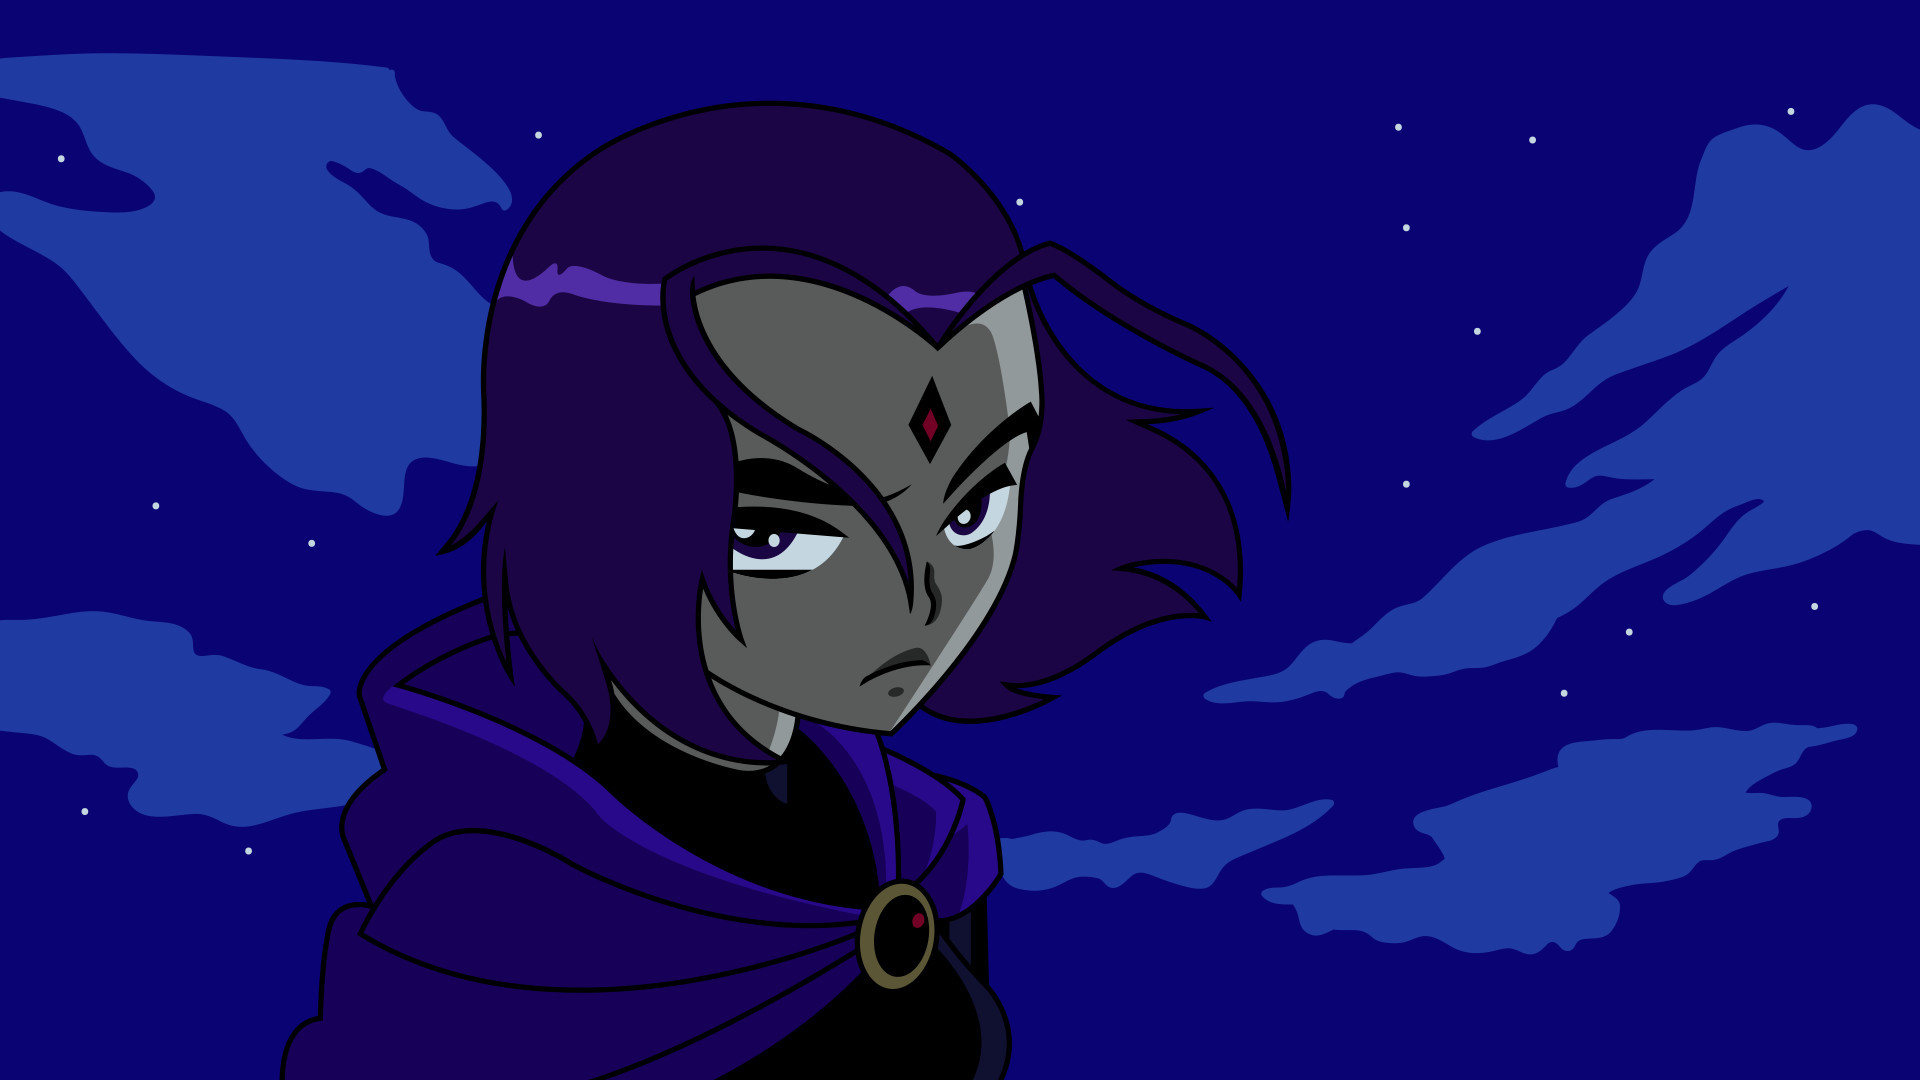 1920x1080 1920x1080 Teen Titans Wallpapers | HD Wallpapers | Pinterest | Teen titans, Hd wallpaper